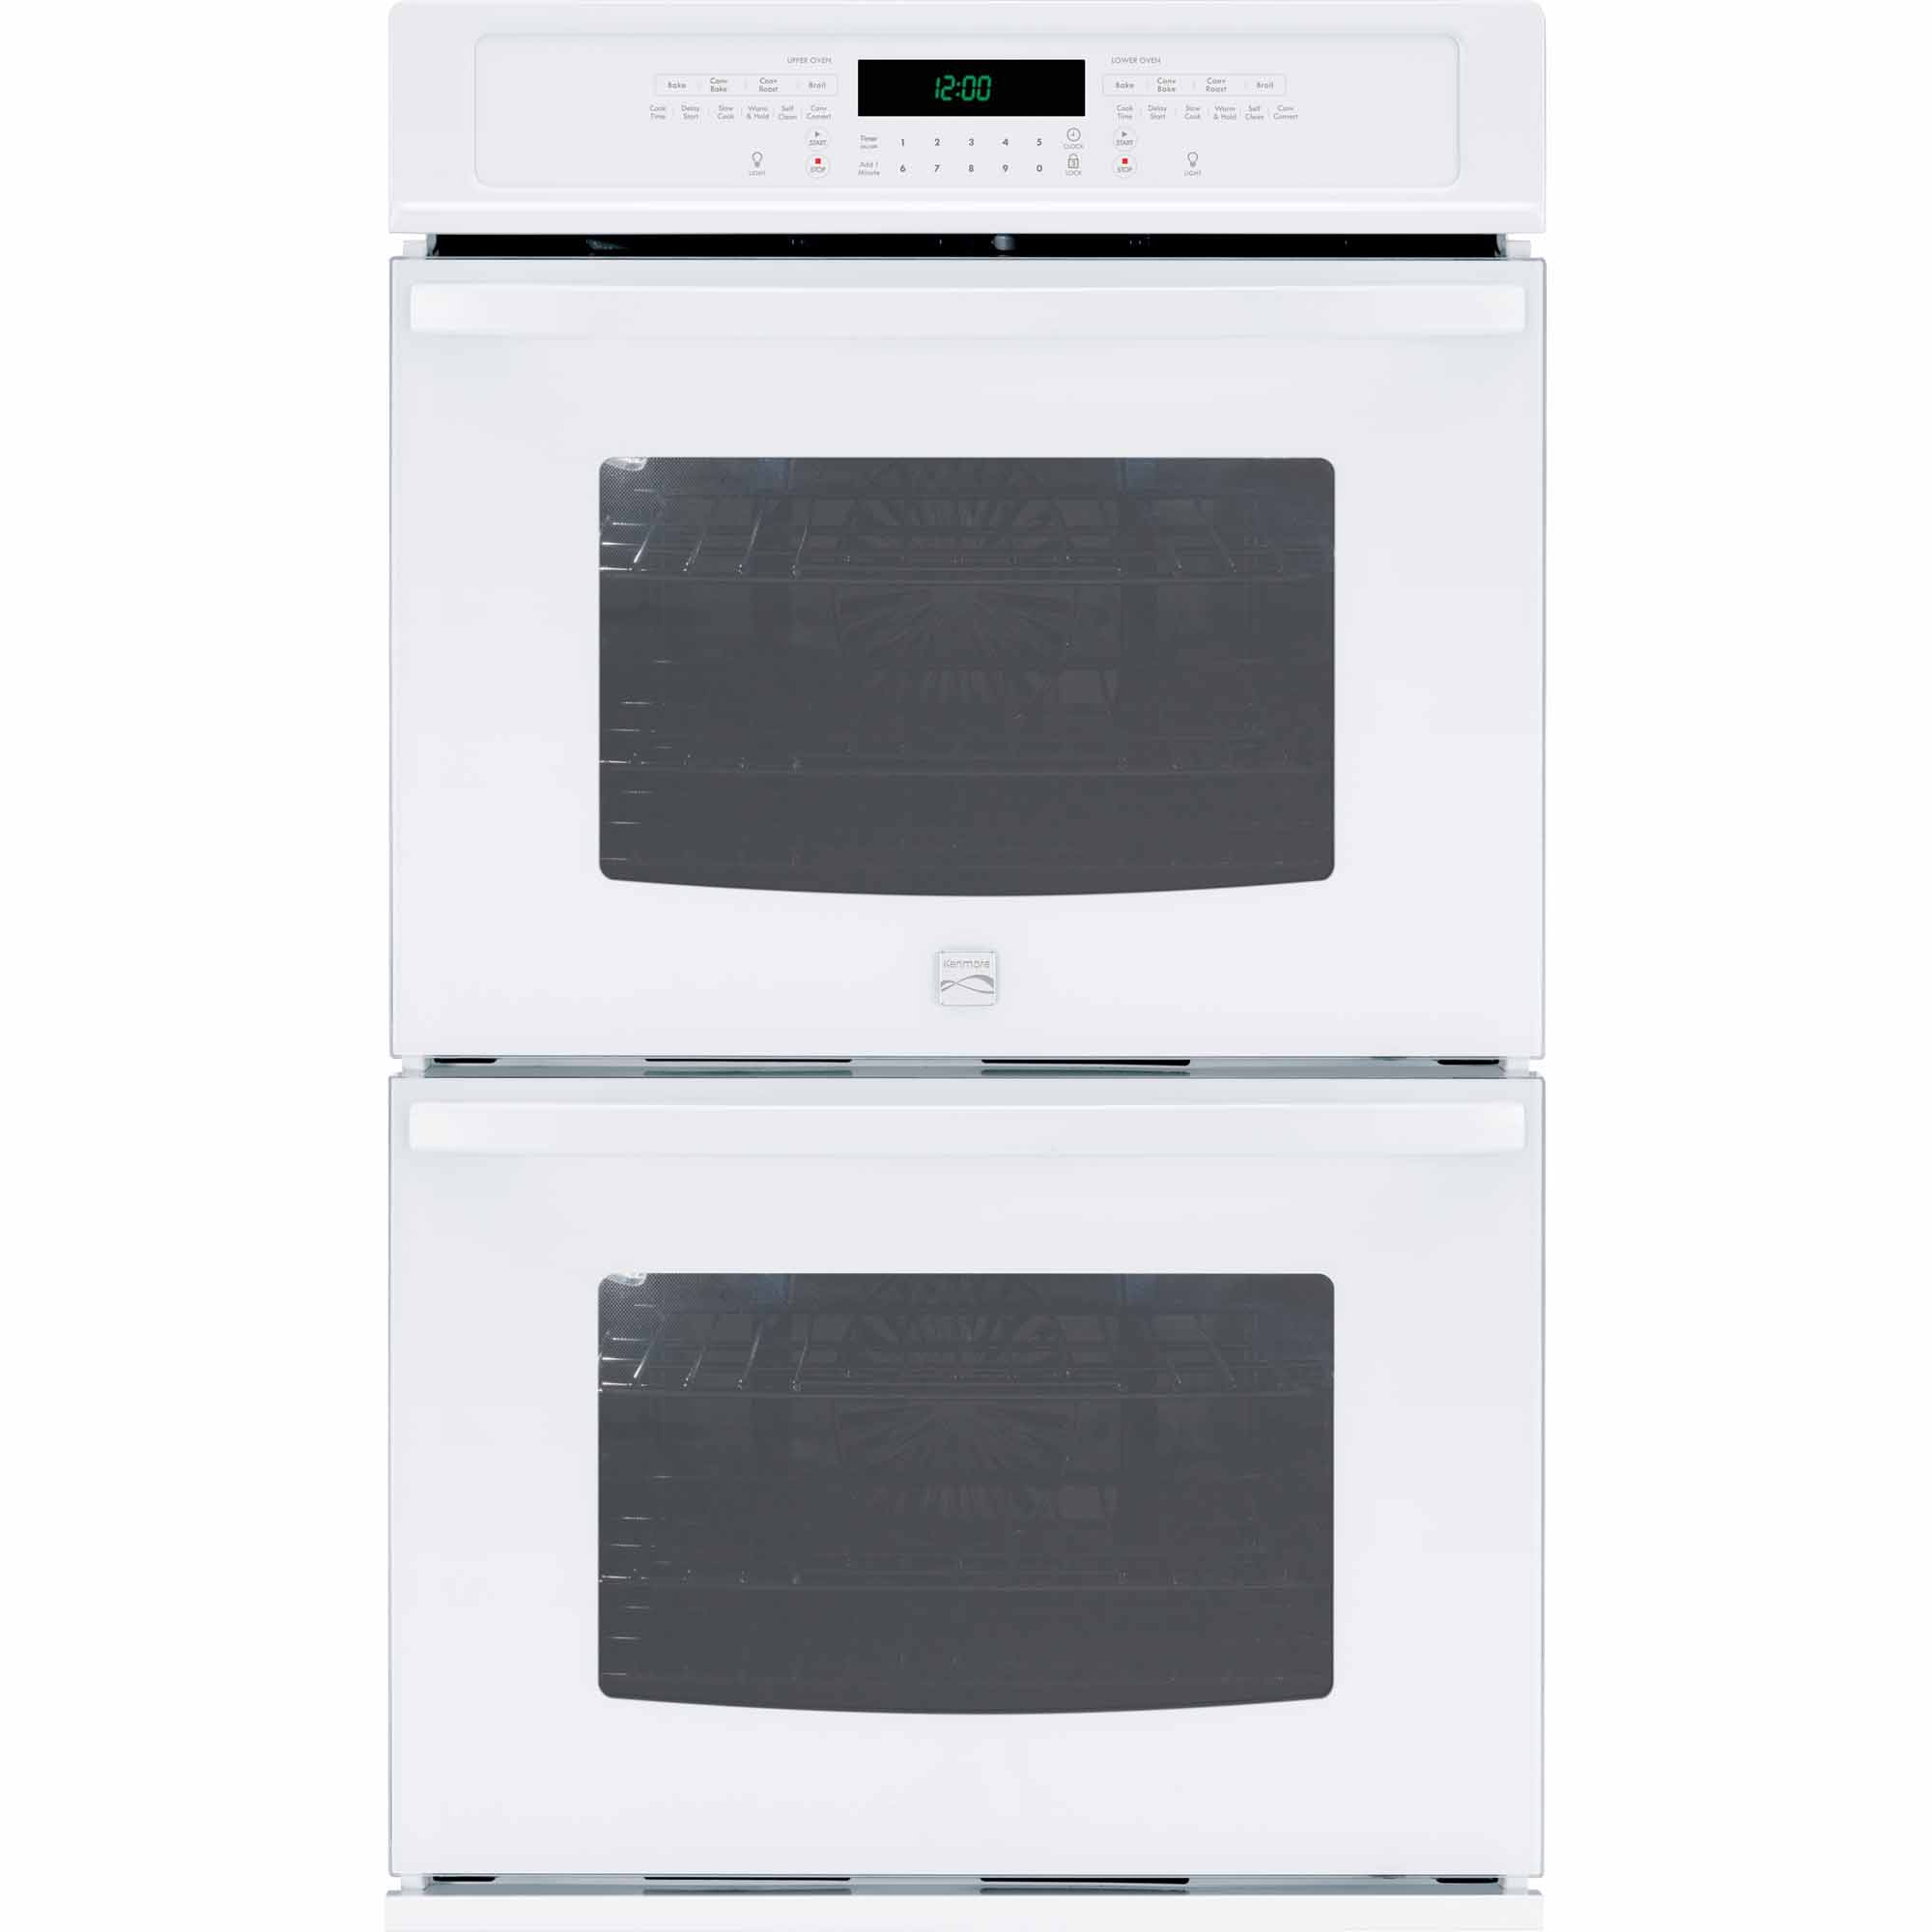 Kenmore 49522 27 Self-Clean Double Electric Wall Oven - White